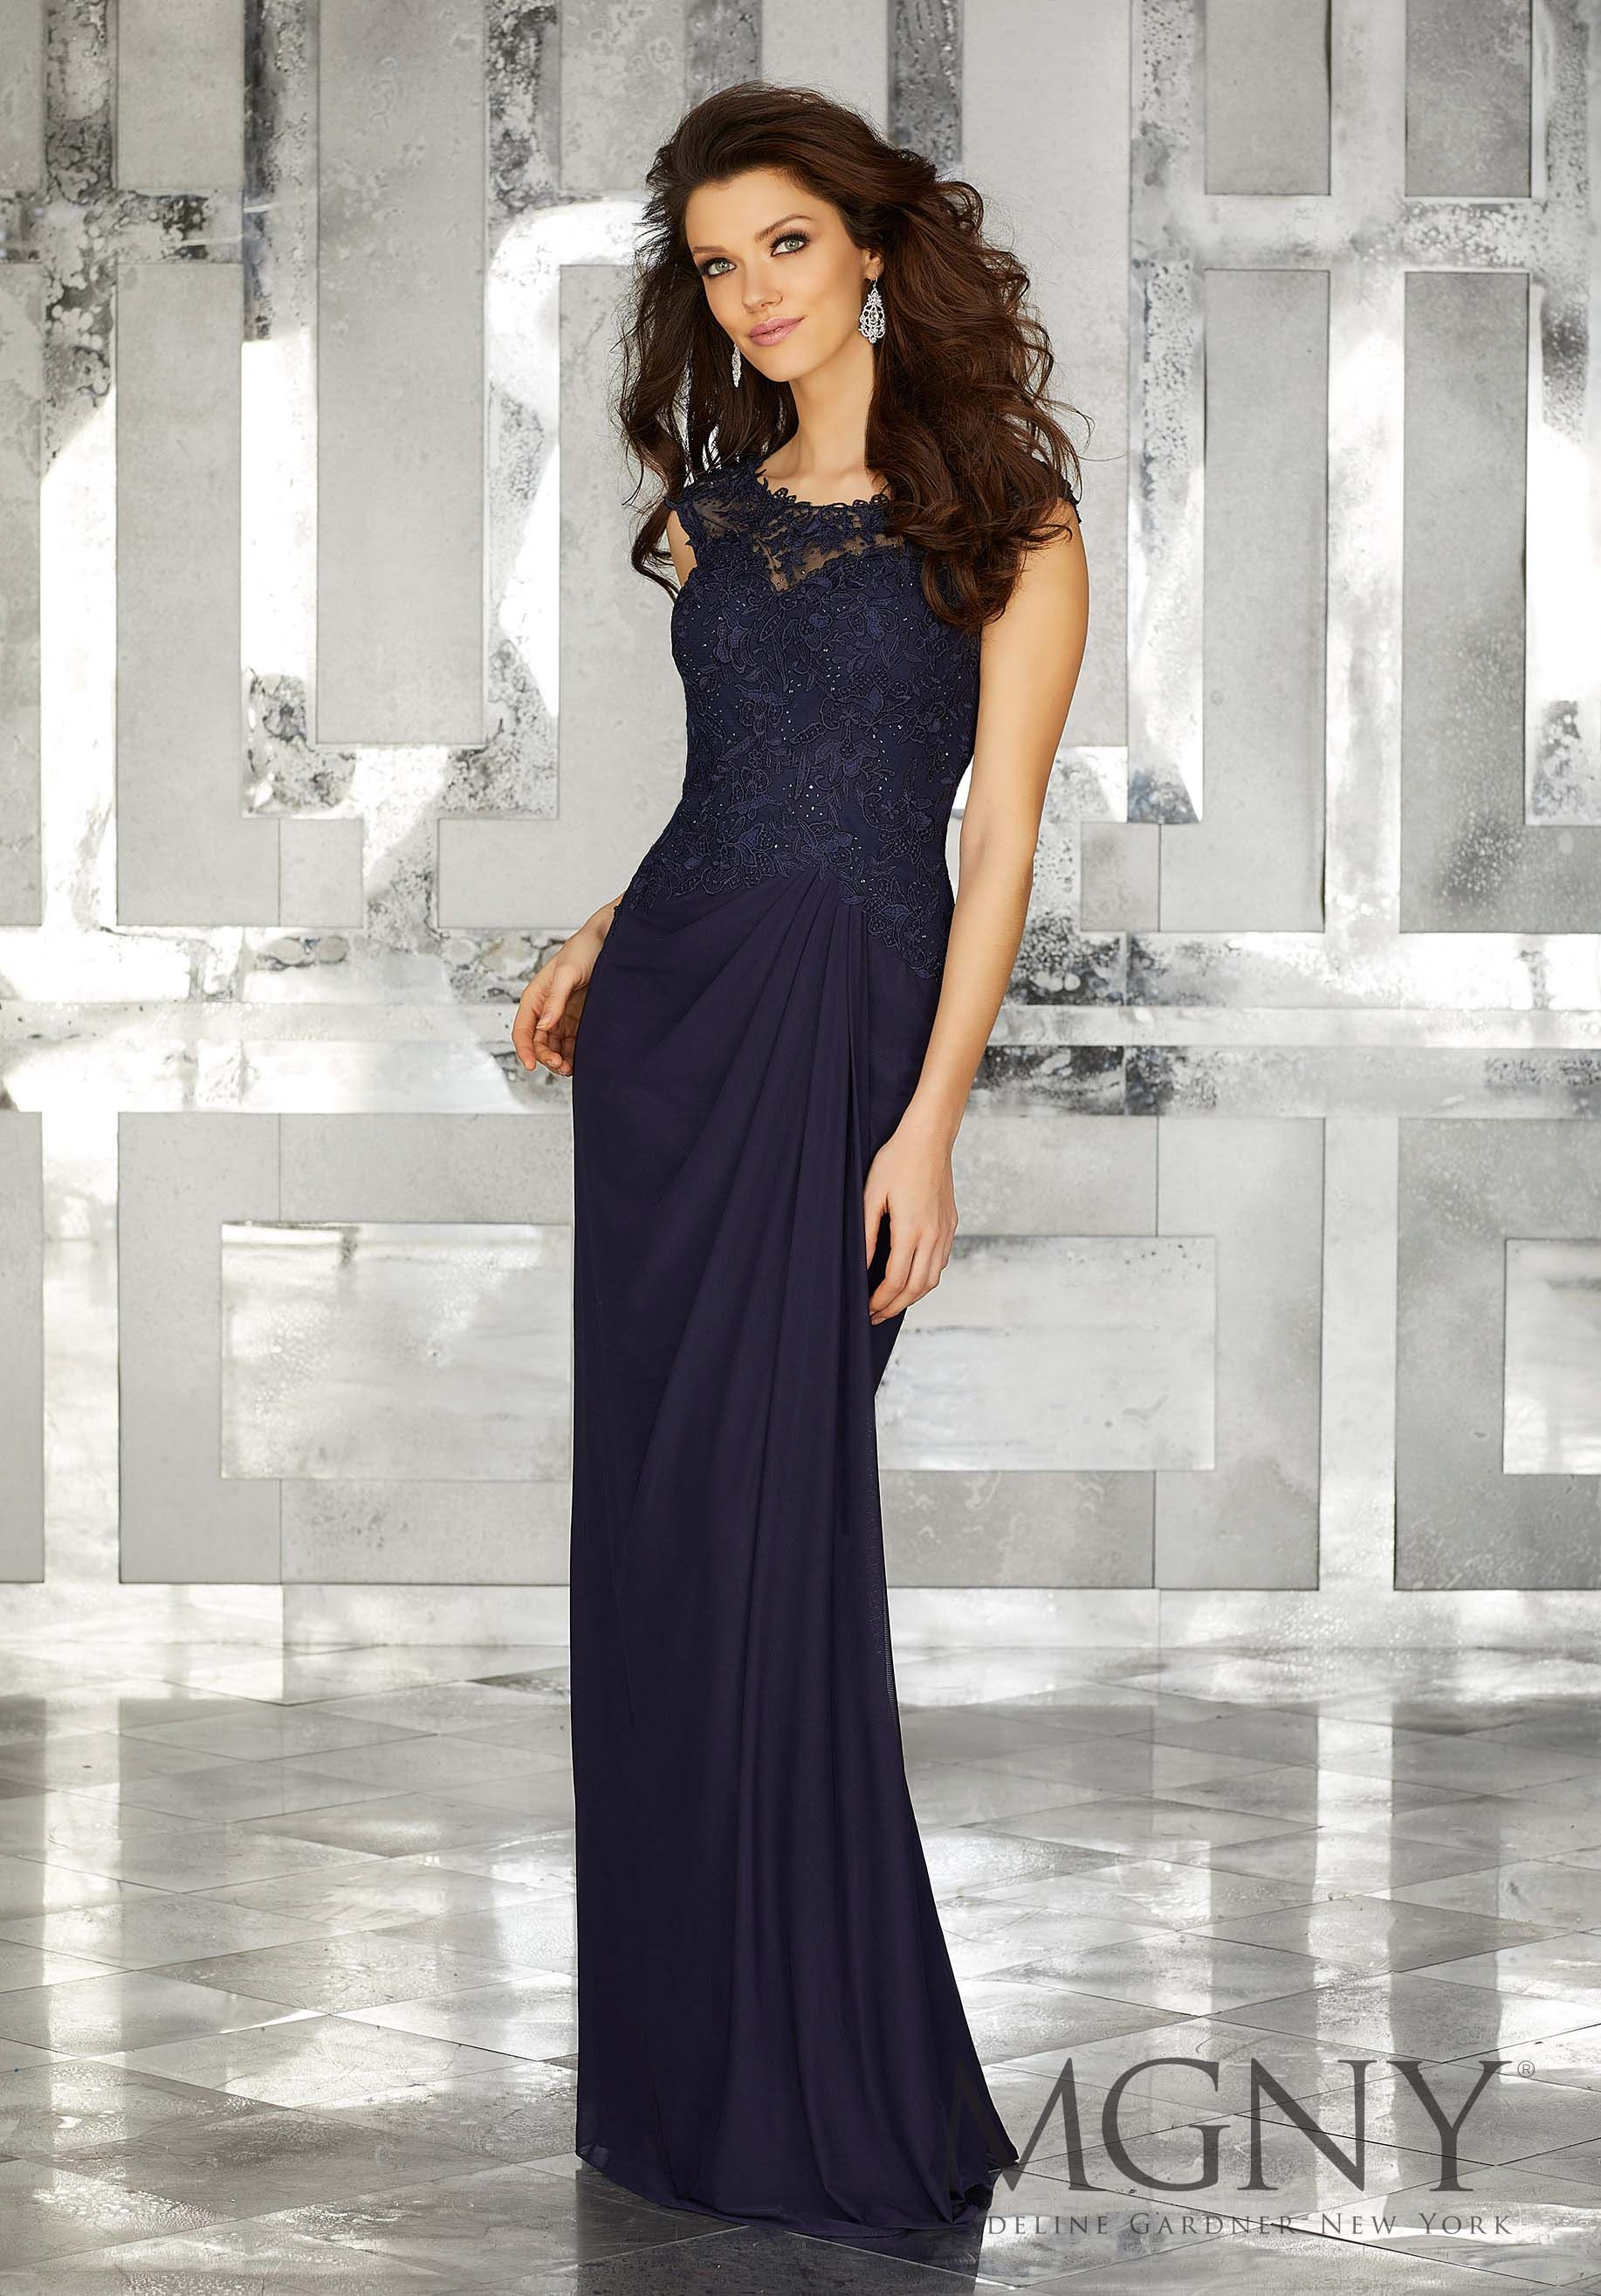 d4c0a0052c43 MGNY | Madeline Gardner, Evening Dress style 71610. Elegant Blue Stretch  Mesh Long Special